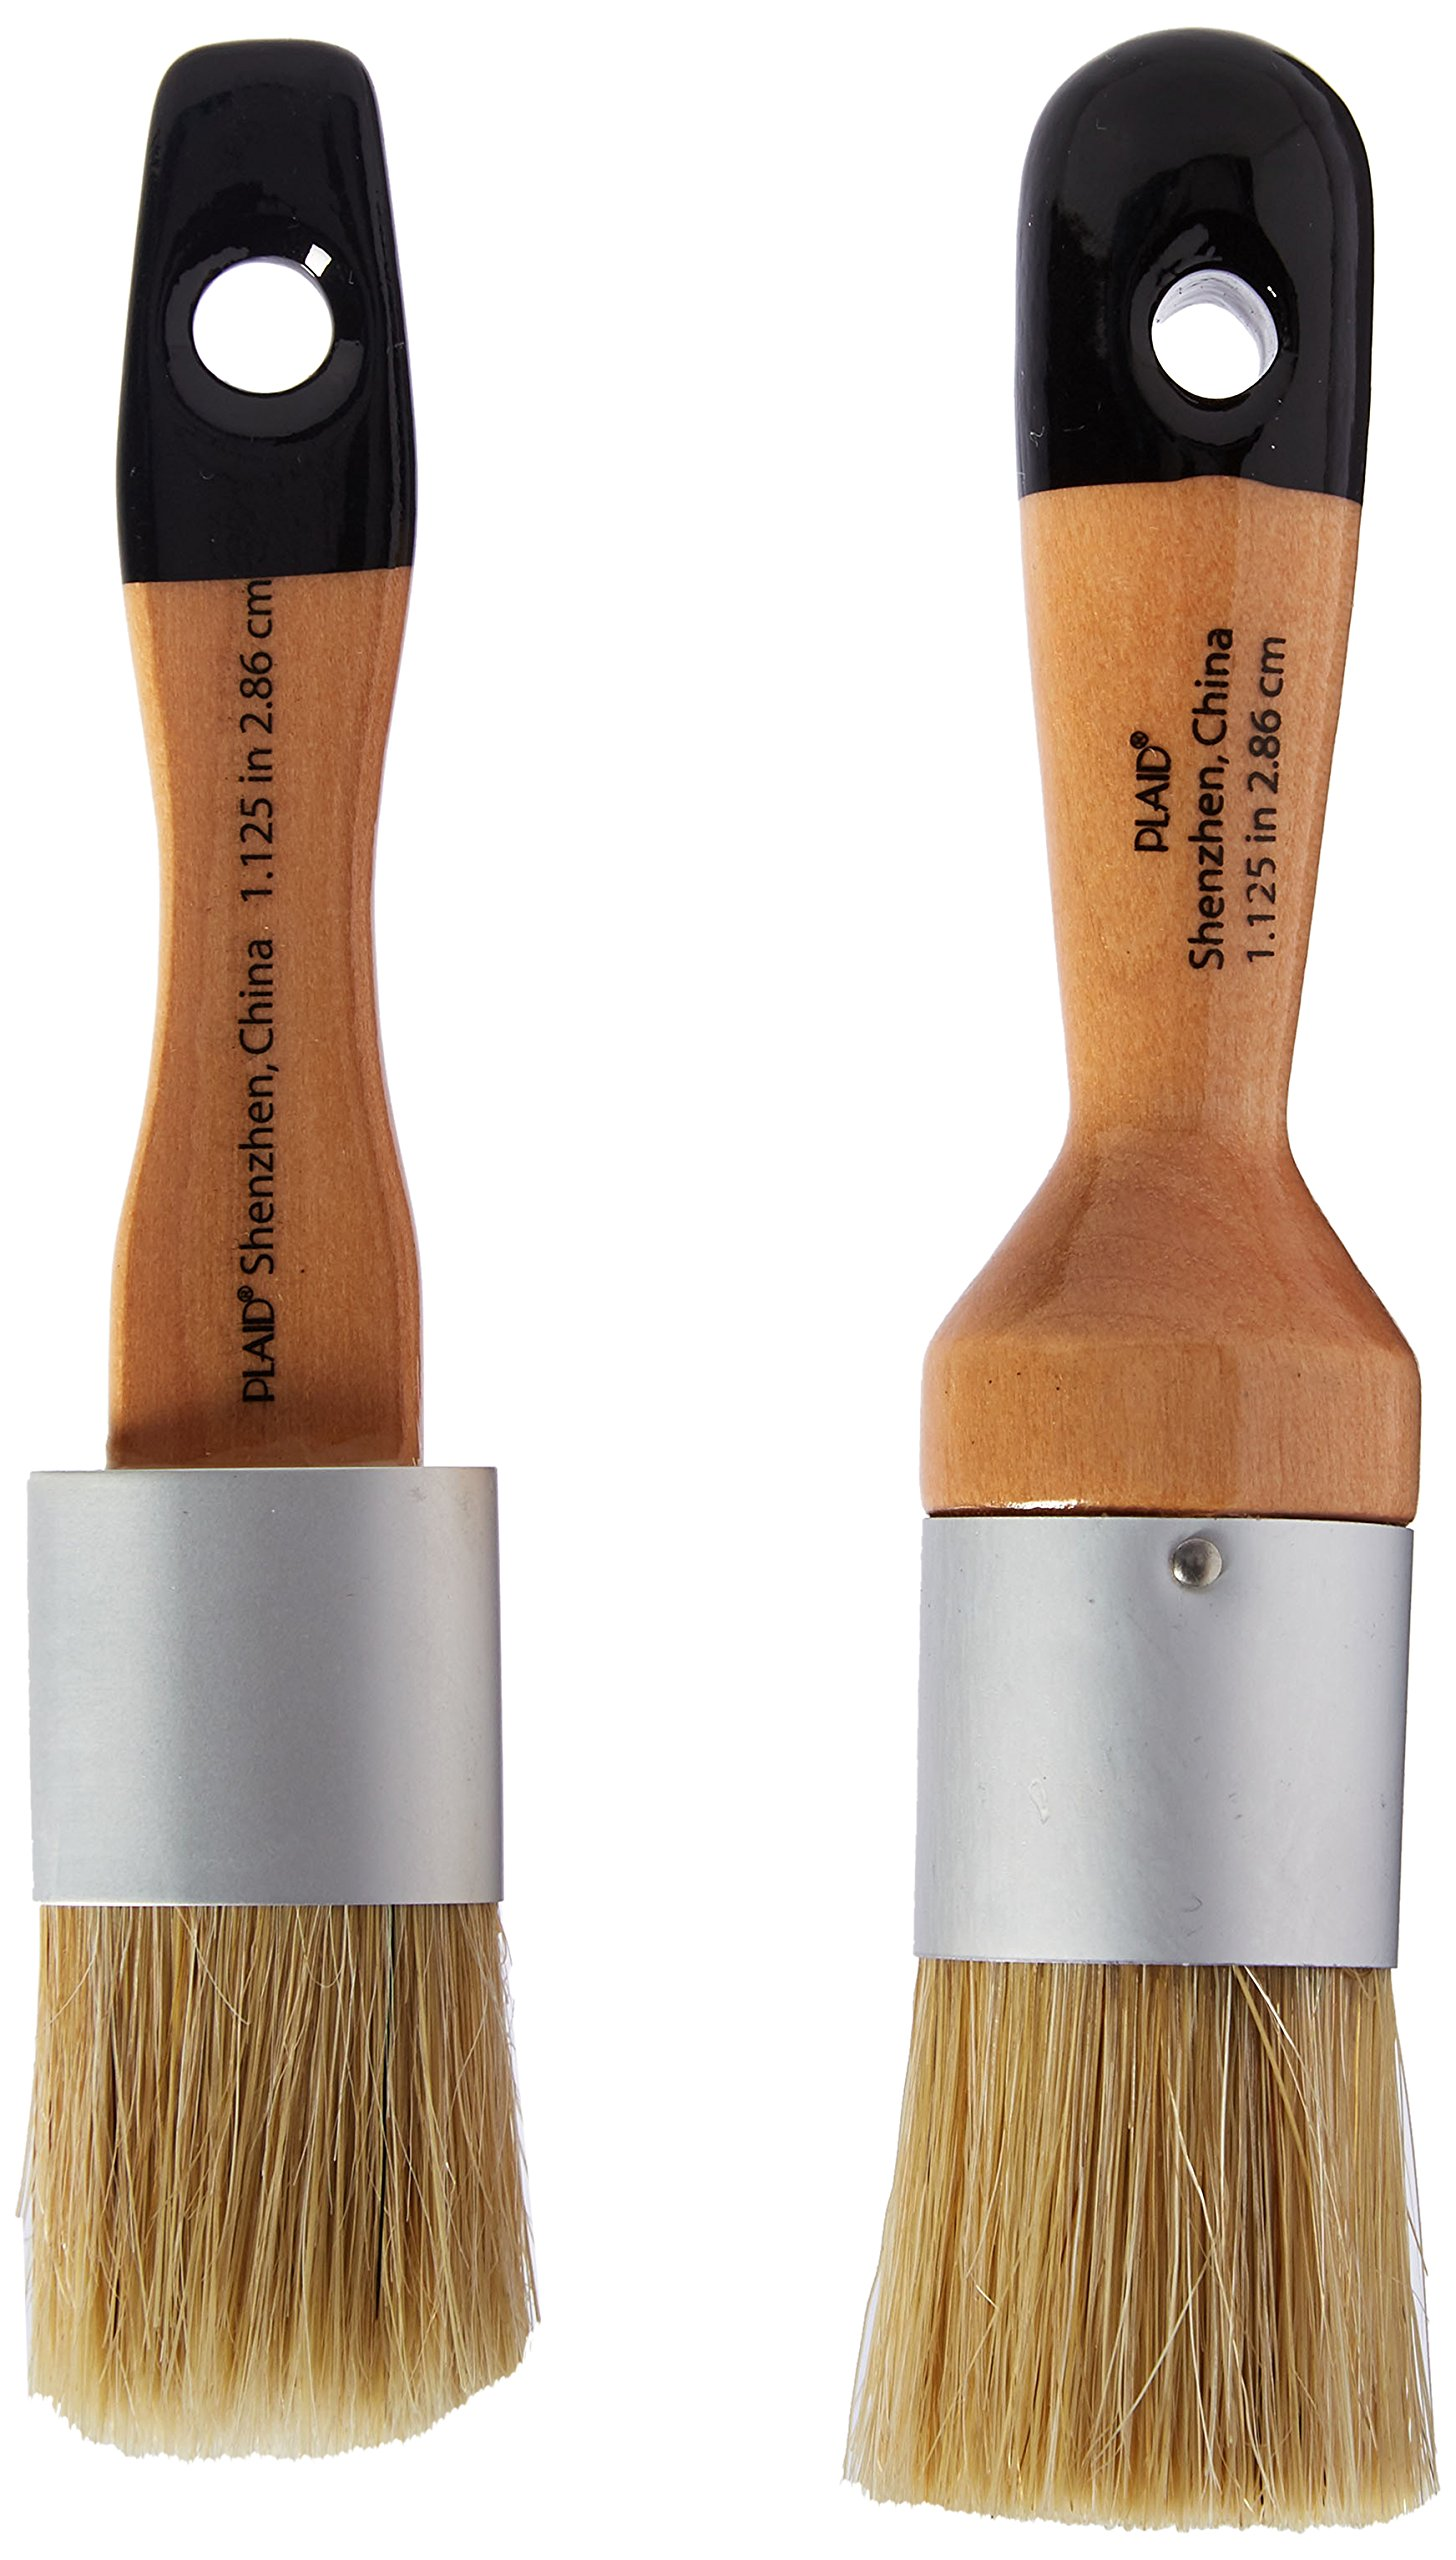 FolkArt Home Decor Chalk and Wax Brushes, 34909 by FolkArt